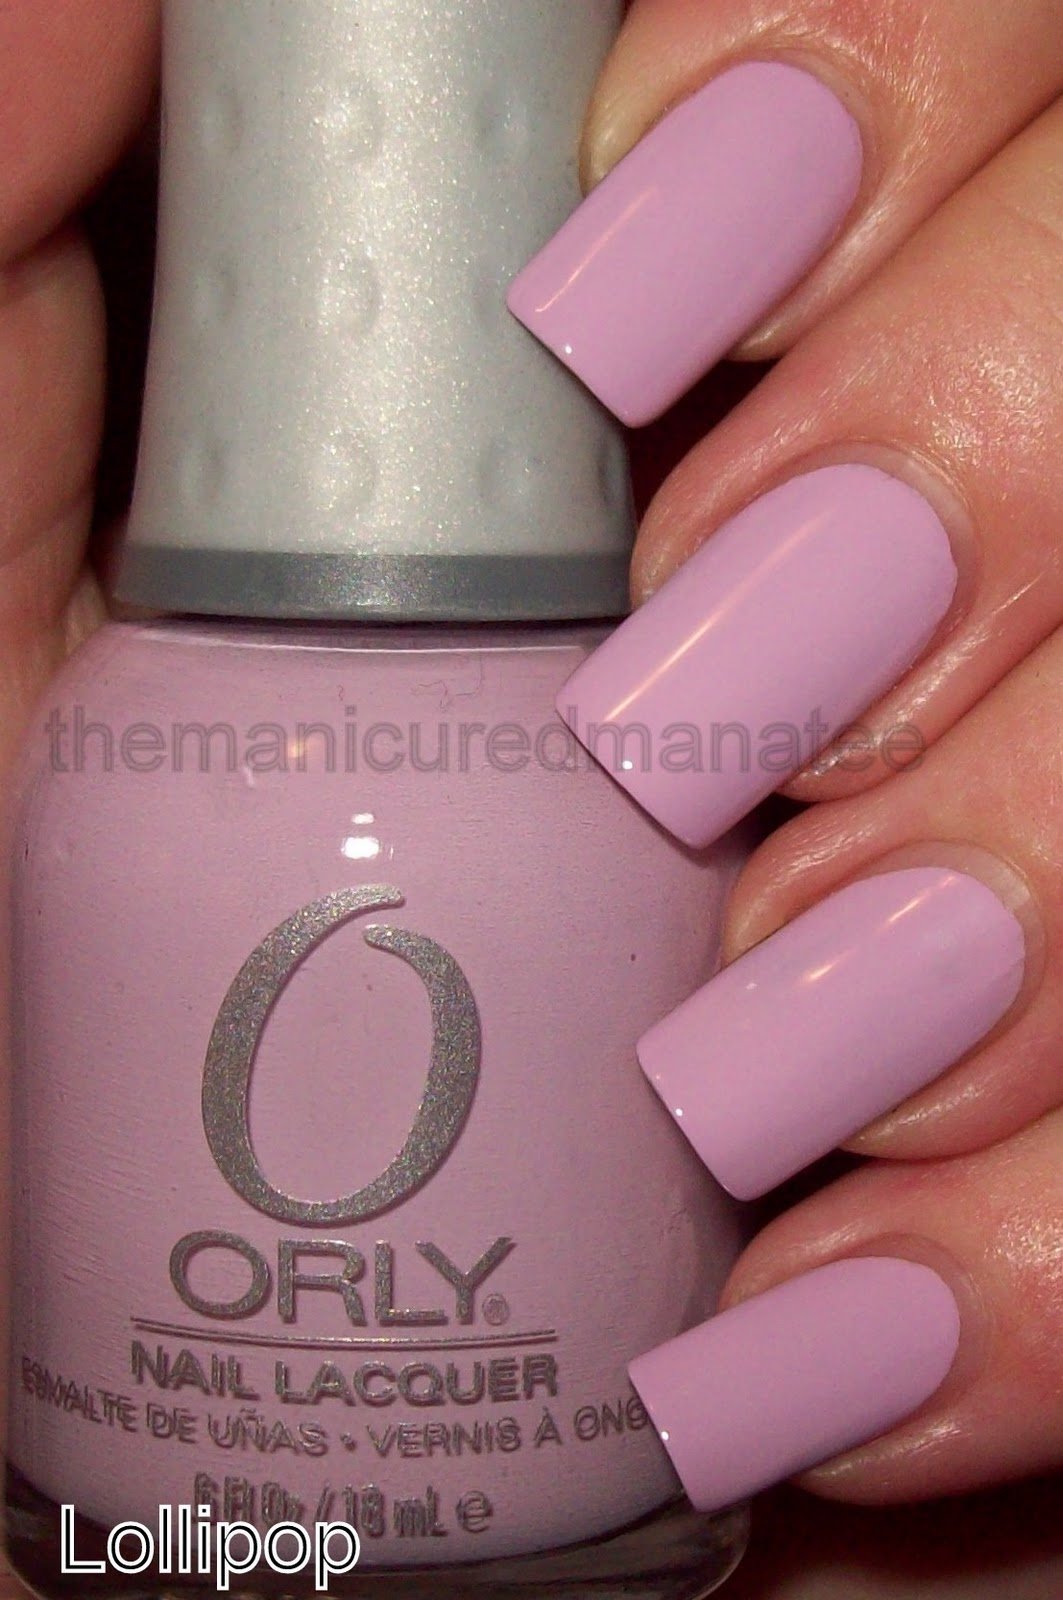 The Manicured Manatee: Orly sweet